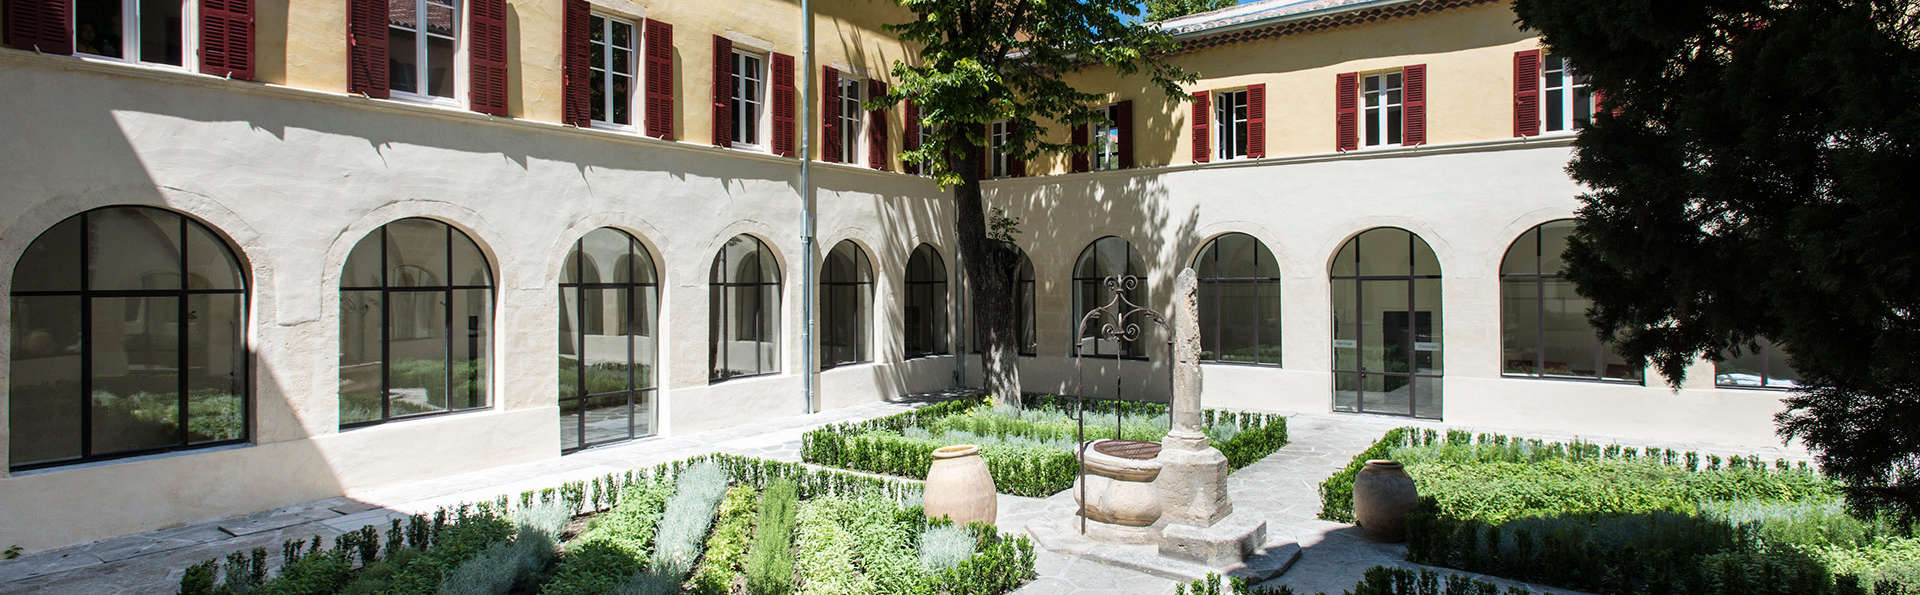 Hôtel Spa Jules César Arles MGallery by Sofitel - EDIT_patio.jpg